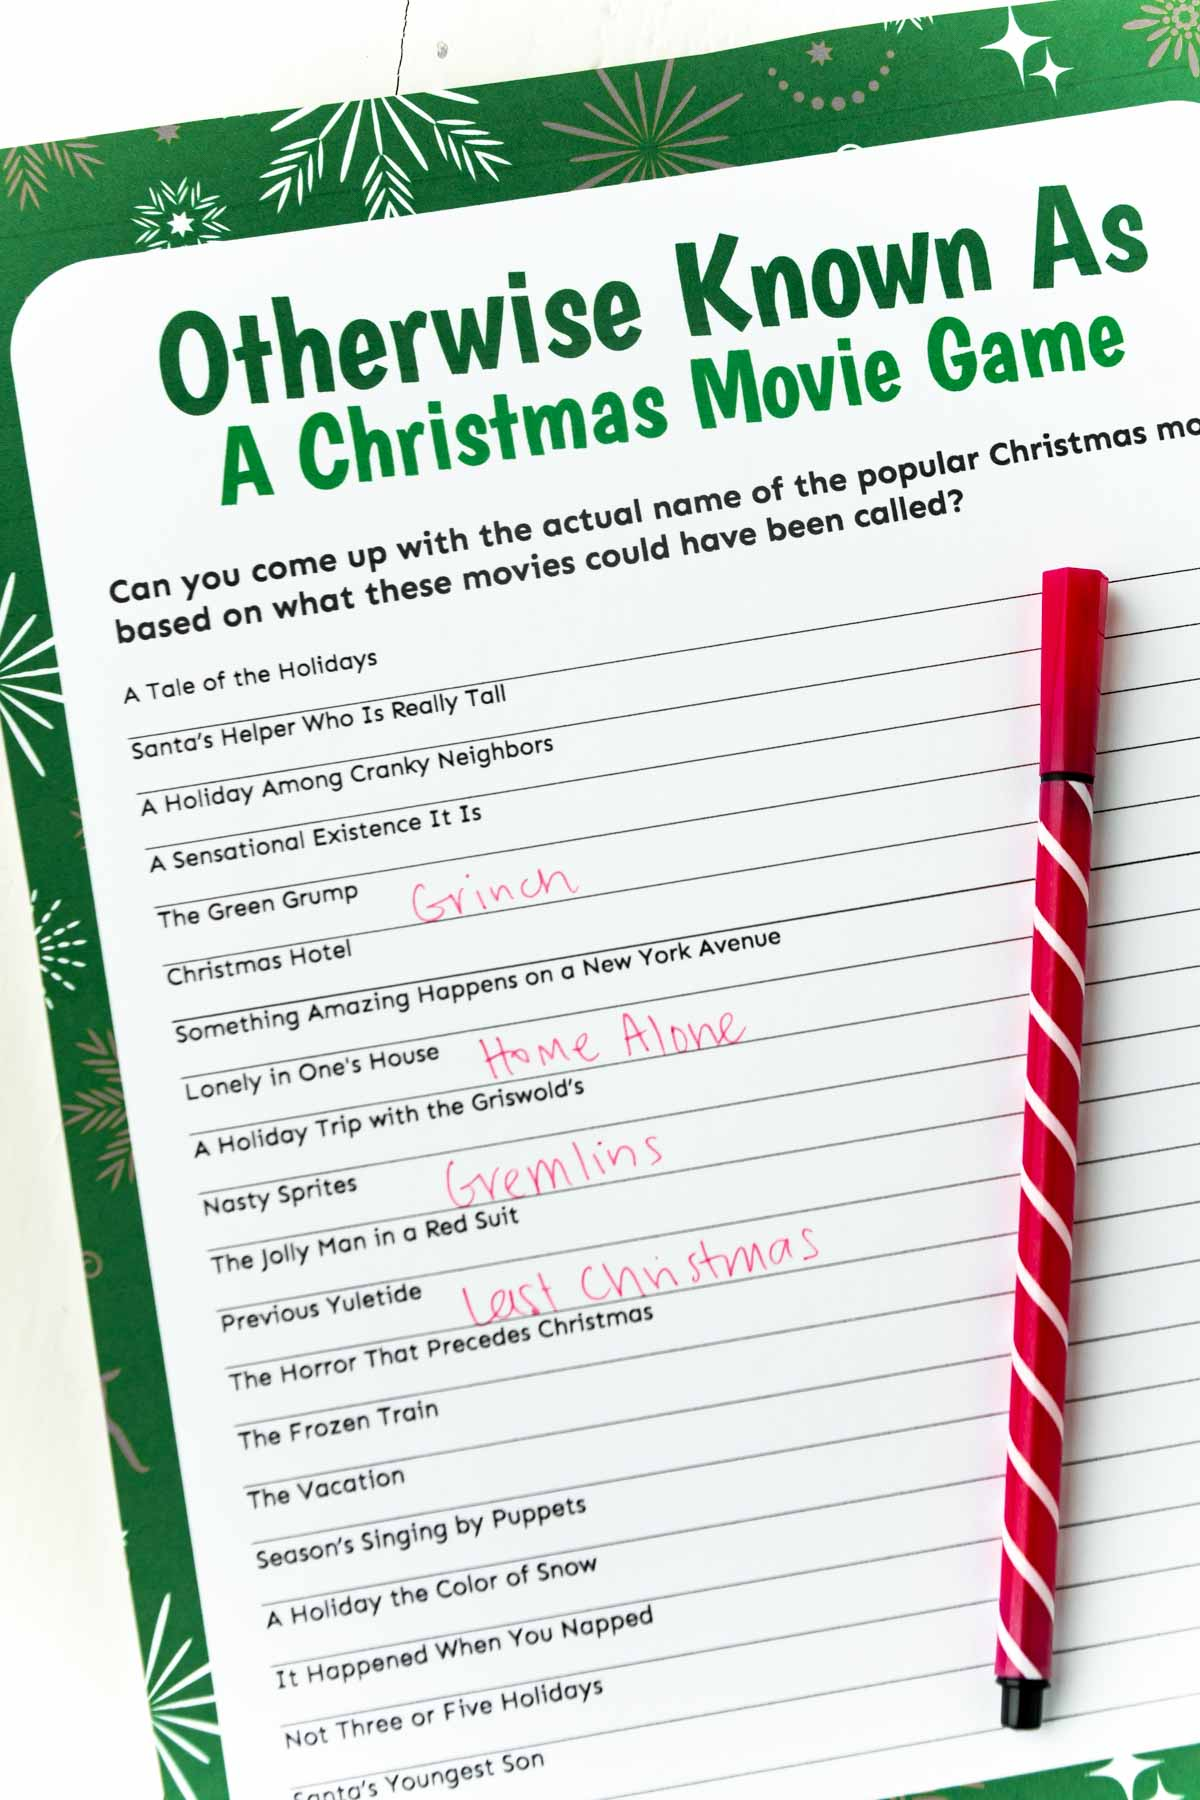 Christmas movie trivia game with a red pen on top